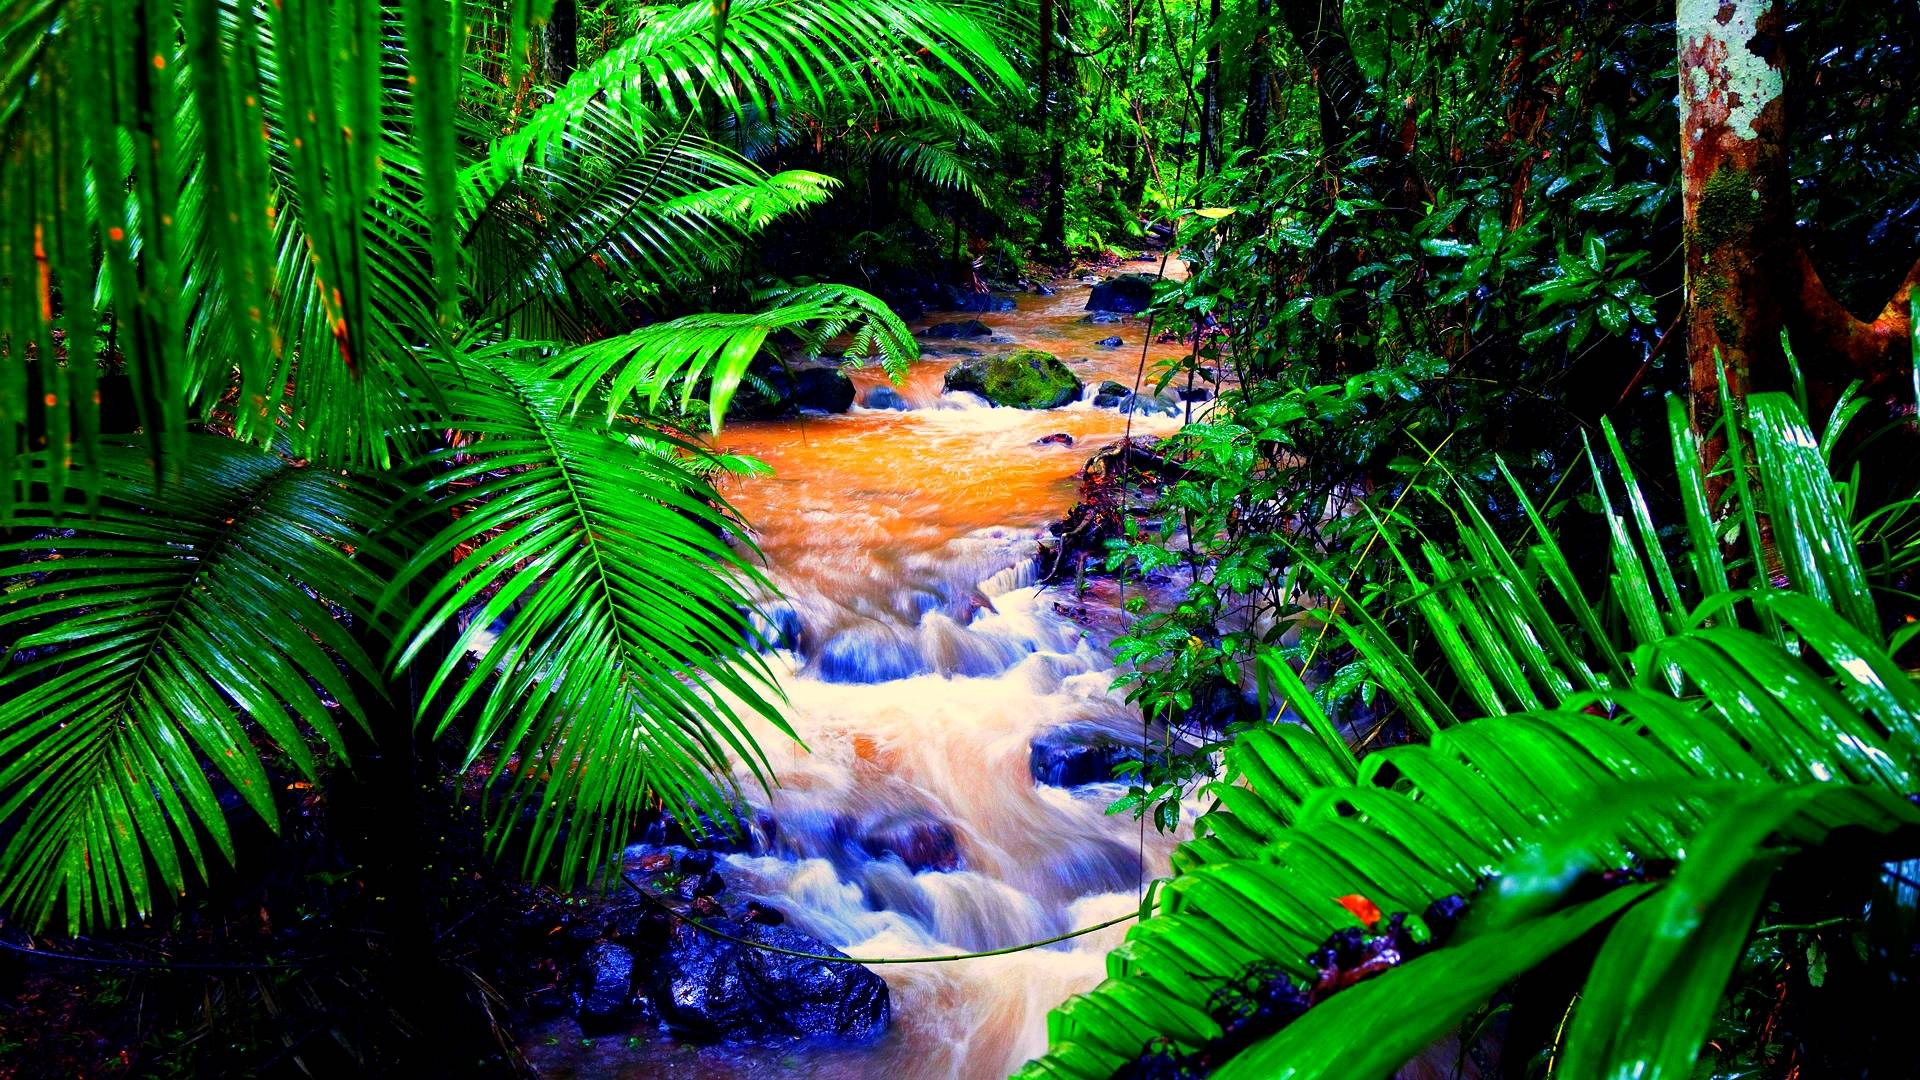 wallpapers 1600x1200 amazon tropical - photo #6